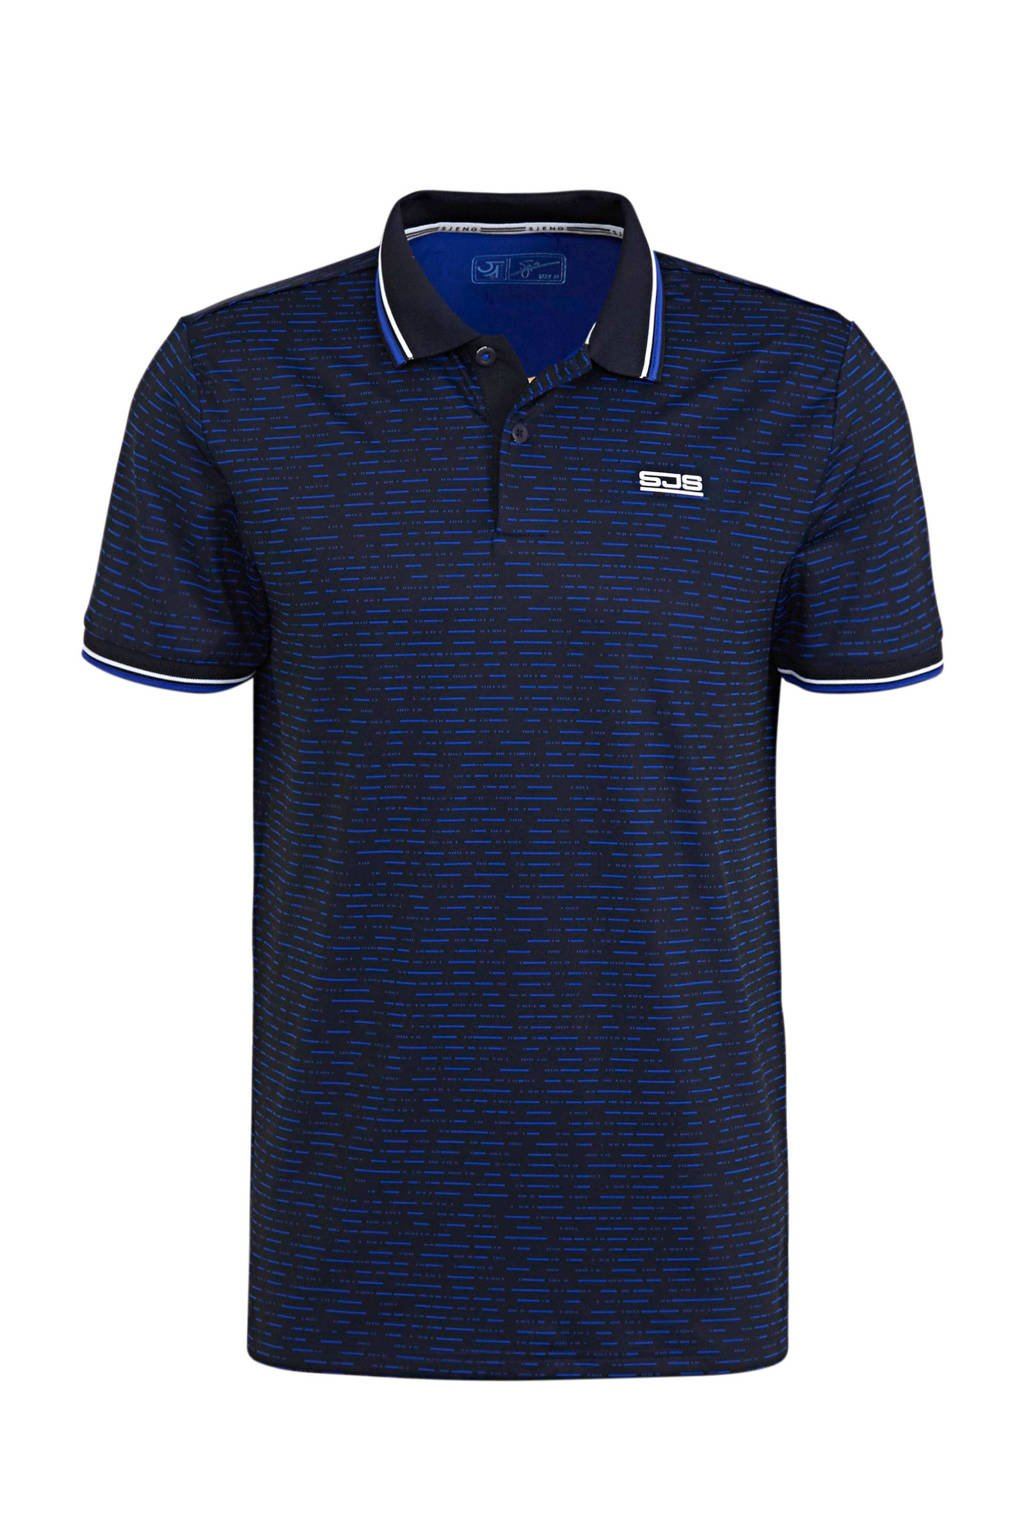 Sjeng Sports   polo donkerblauw, Donkerblauw